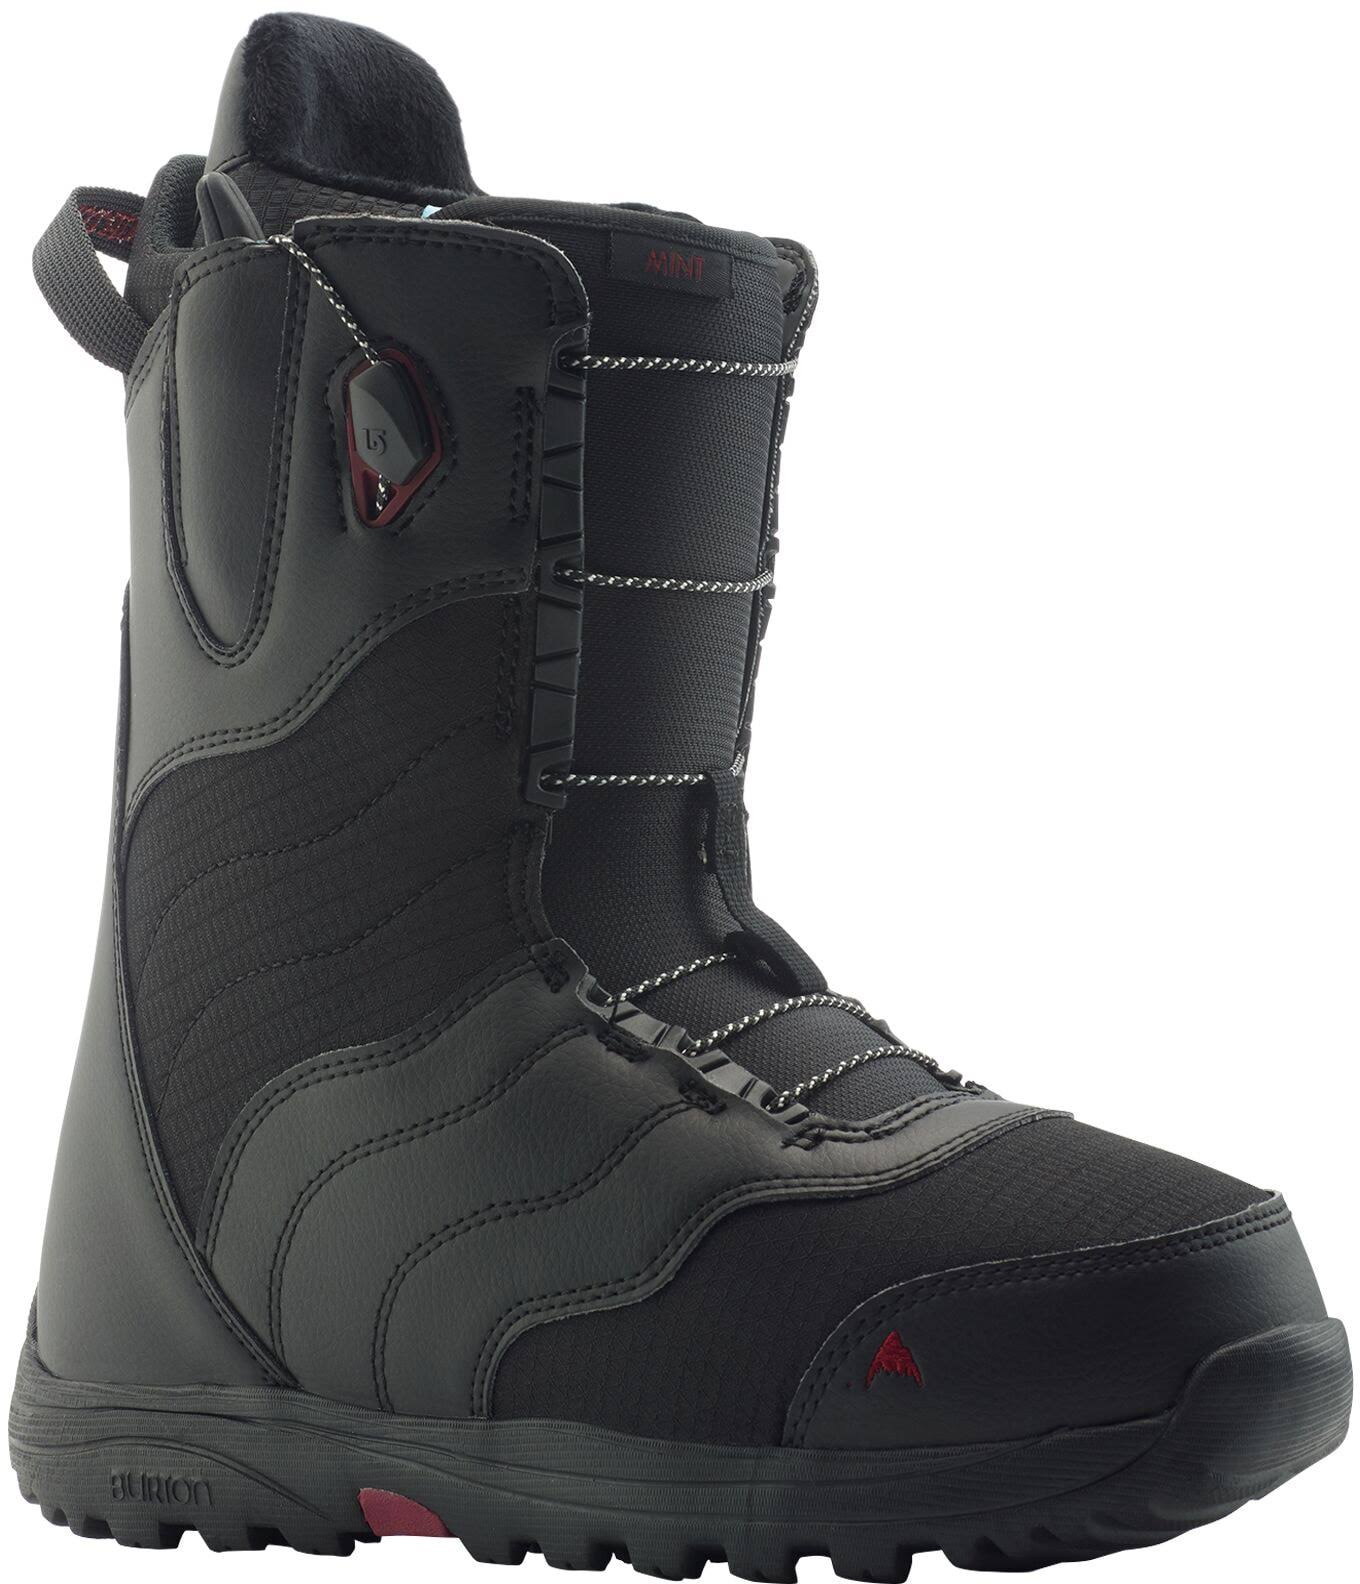 Burton Mint Snowboard Boot - Women's Black, 6.5